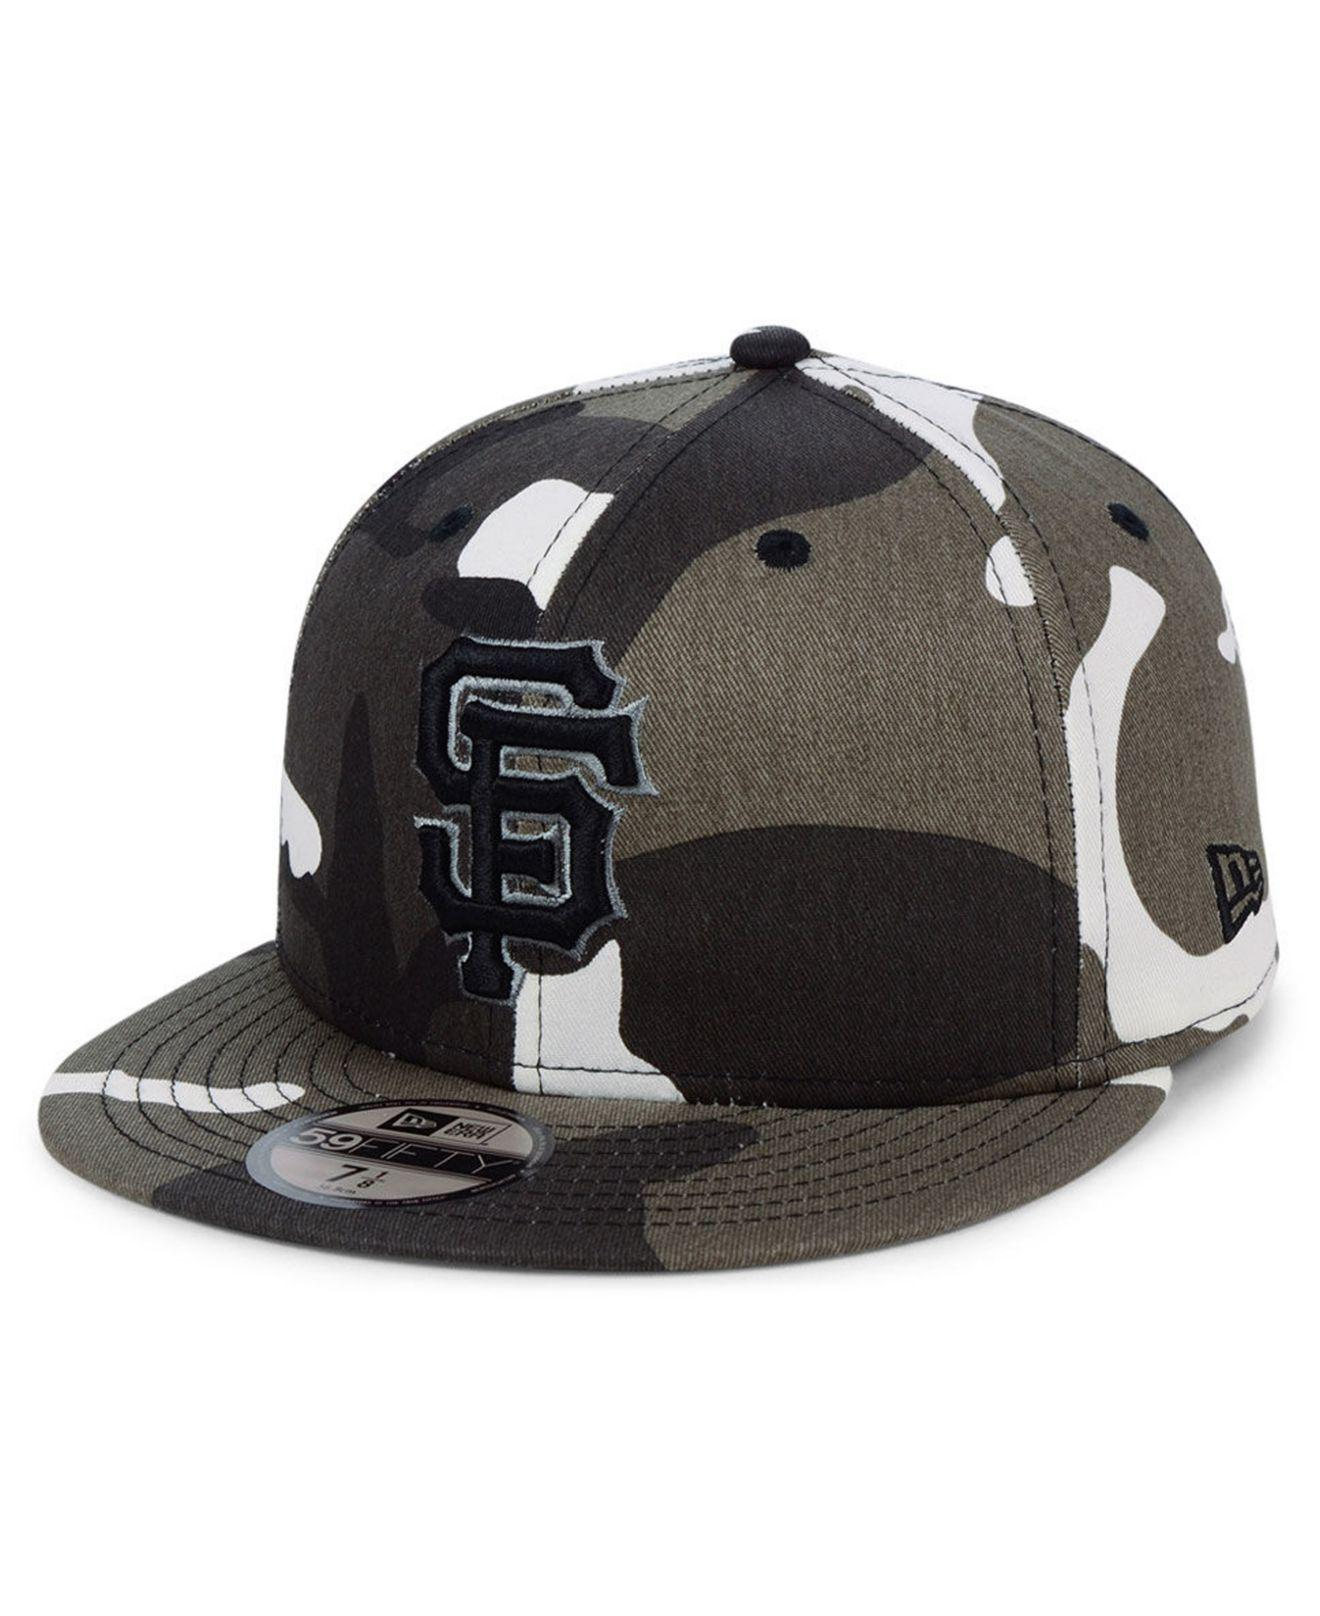 new style 4dc37 ab92e KTZ San Francisco Giants Fall Prism Pack 59fifty-fitted Cap in Black ...